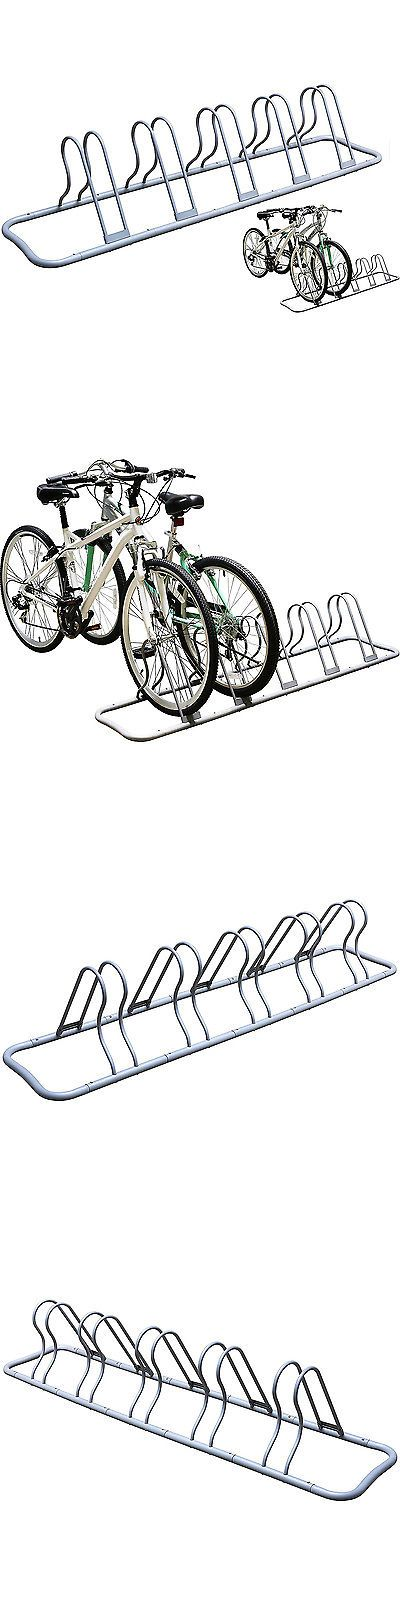 Bicycle Stands and Storage 158997: Bike Parking Rack Adjustable 5 Bicycle Floor Stand Holder Outdoor Garage Storage -> BUY IT NOW ONLY: $42.83 on eBay!